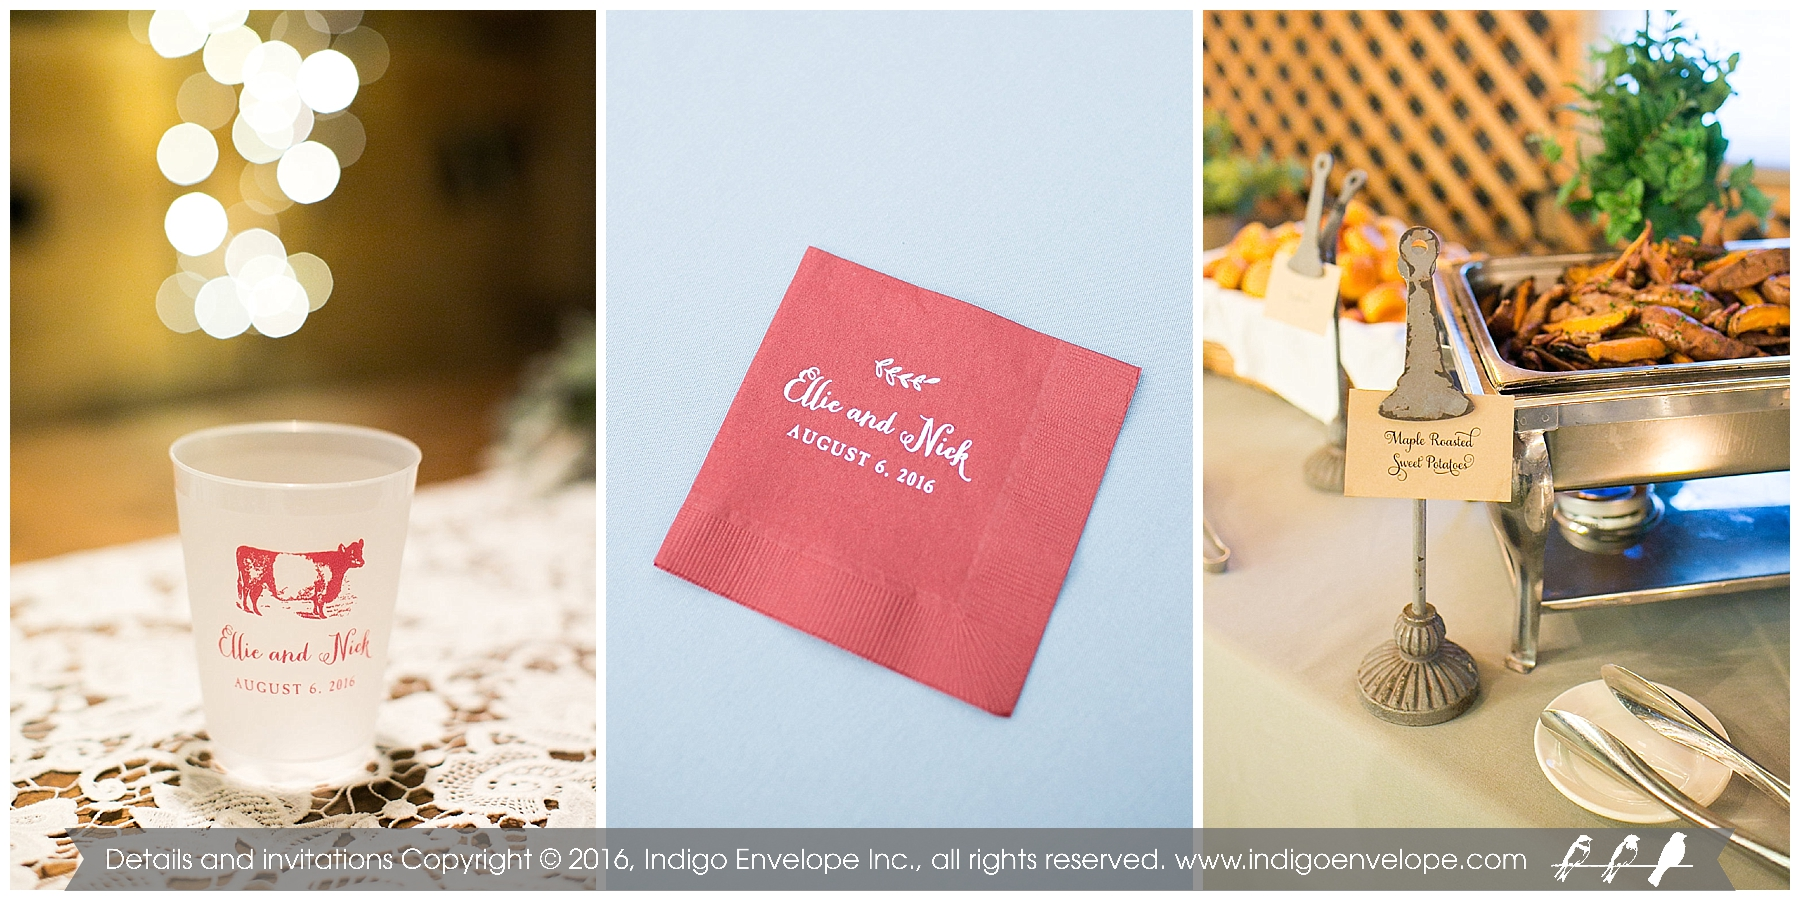 Fearrington Wedding, branded signs, drinkware, and napkins